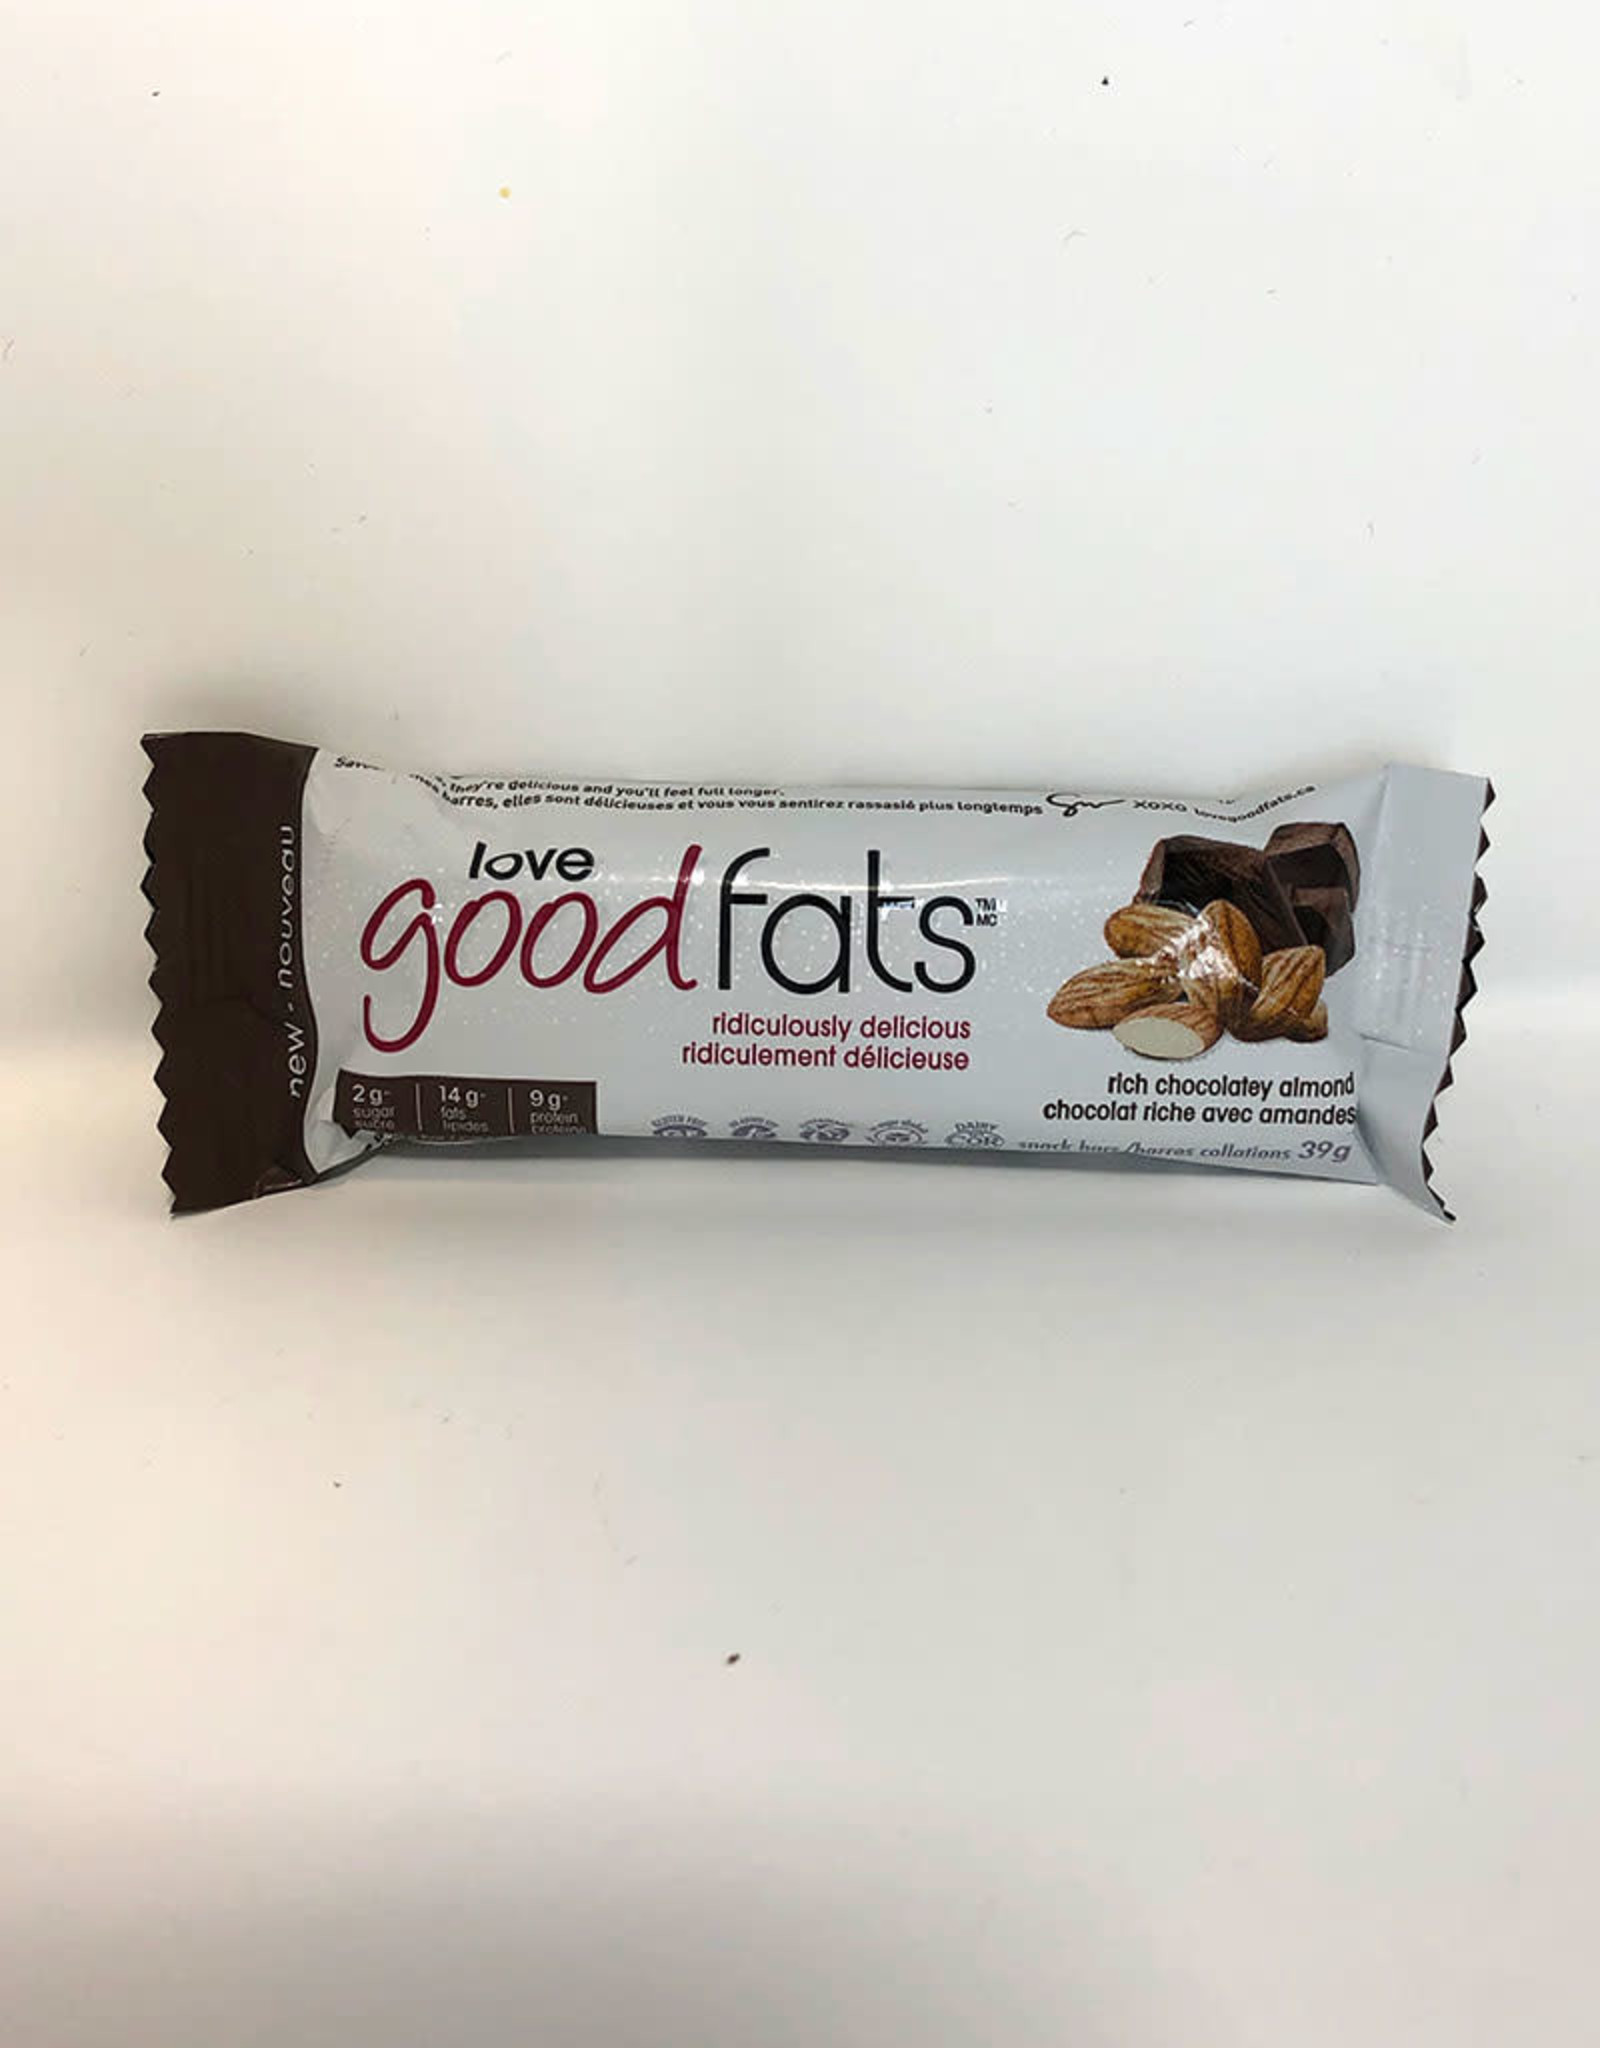 Love Good Fats Love Good Fats - Rich Chocolatey Almond